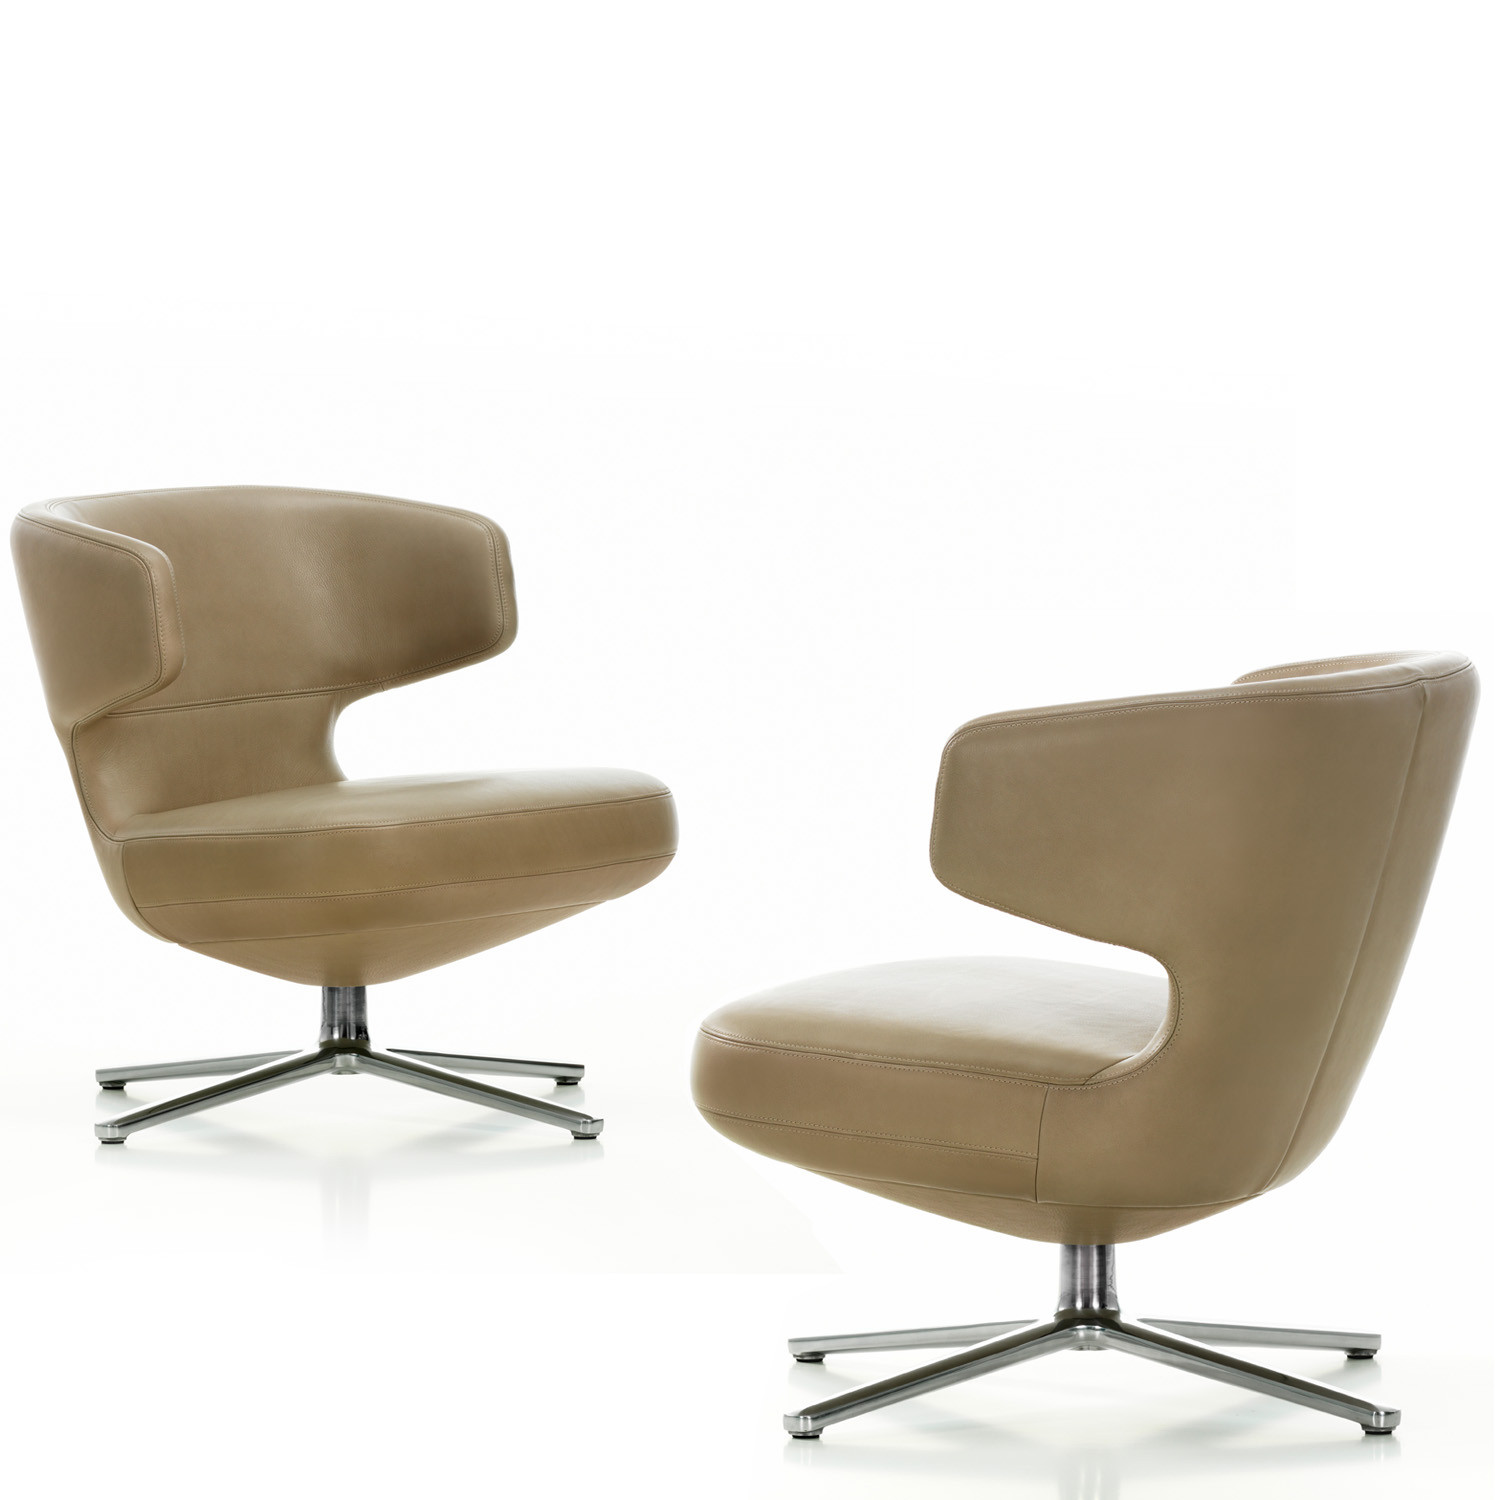 Petit Repos Armchair Vitra Low Lounge Seating Apres